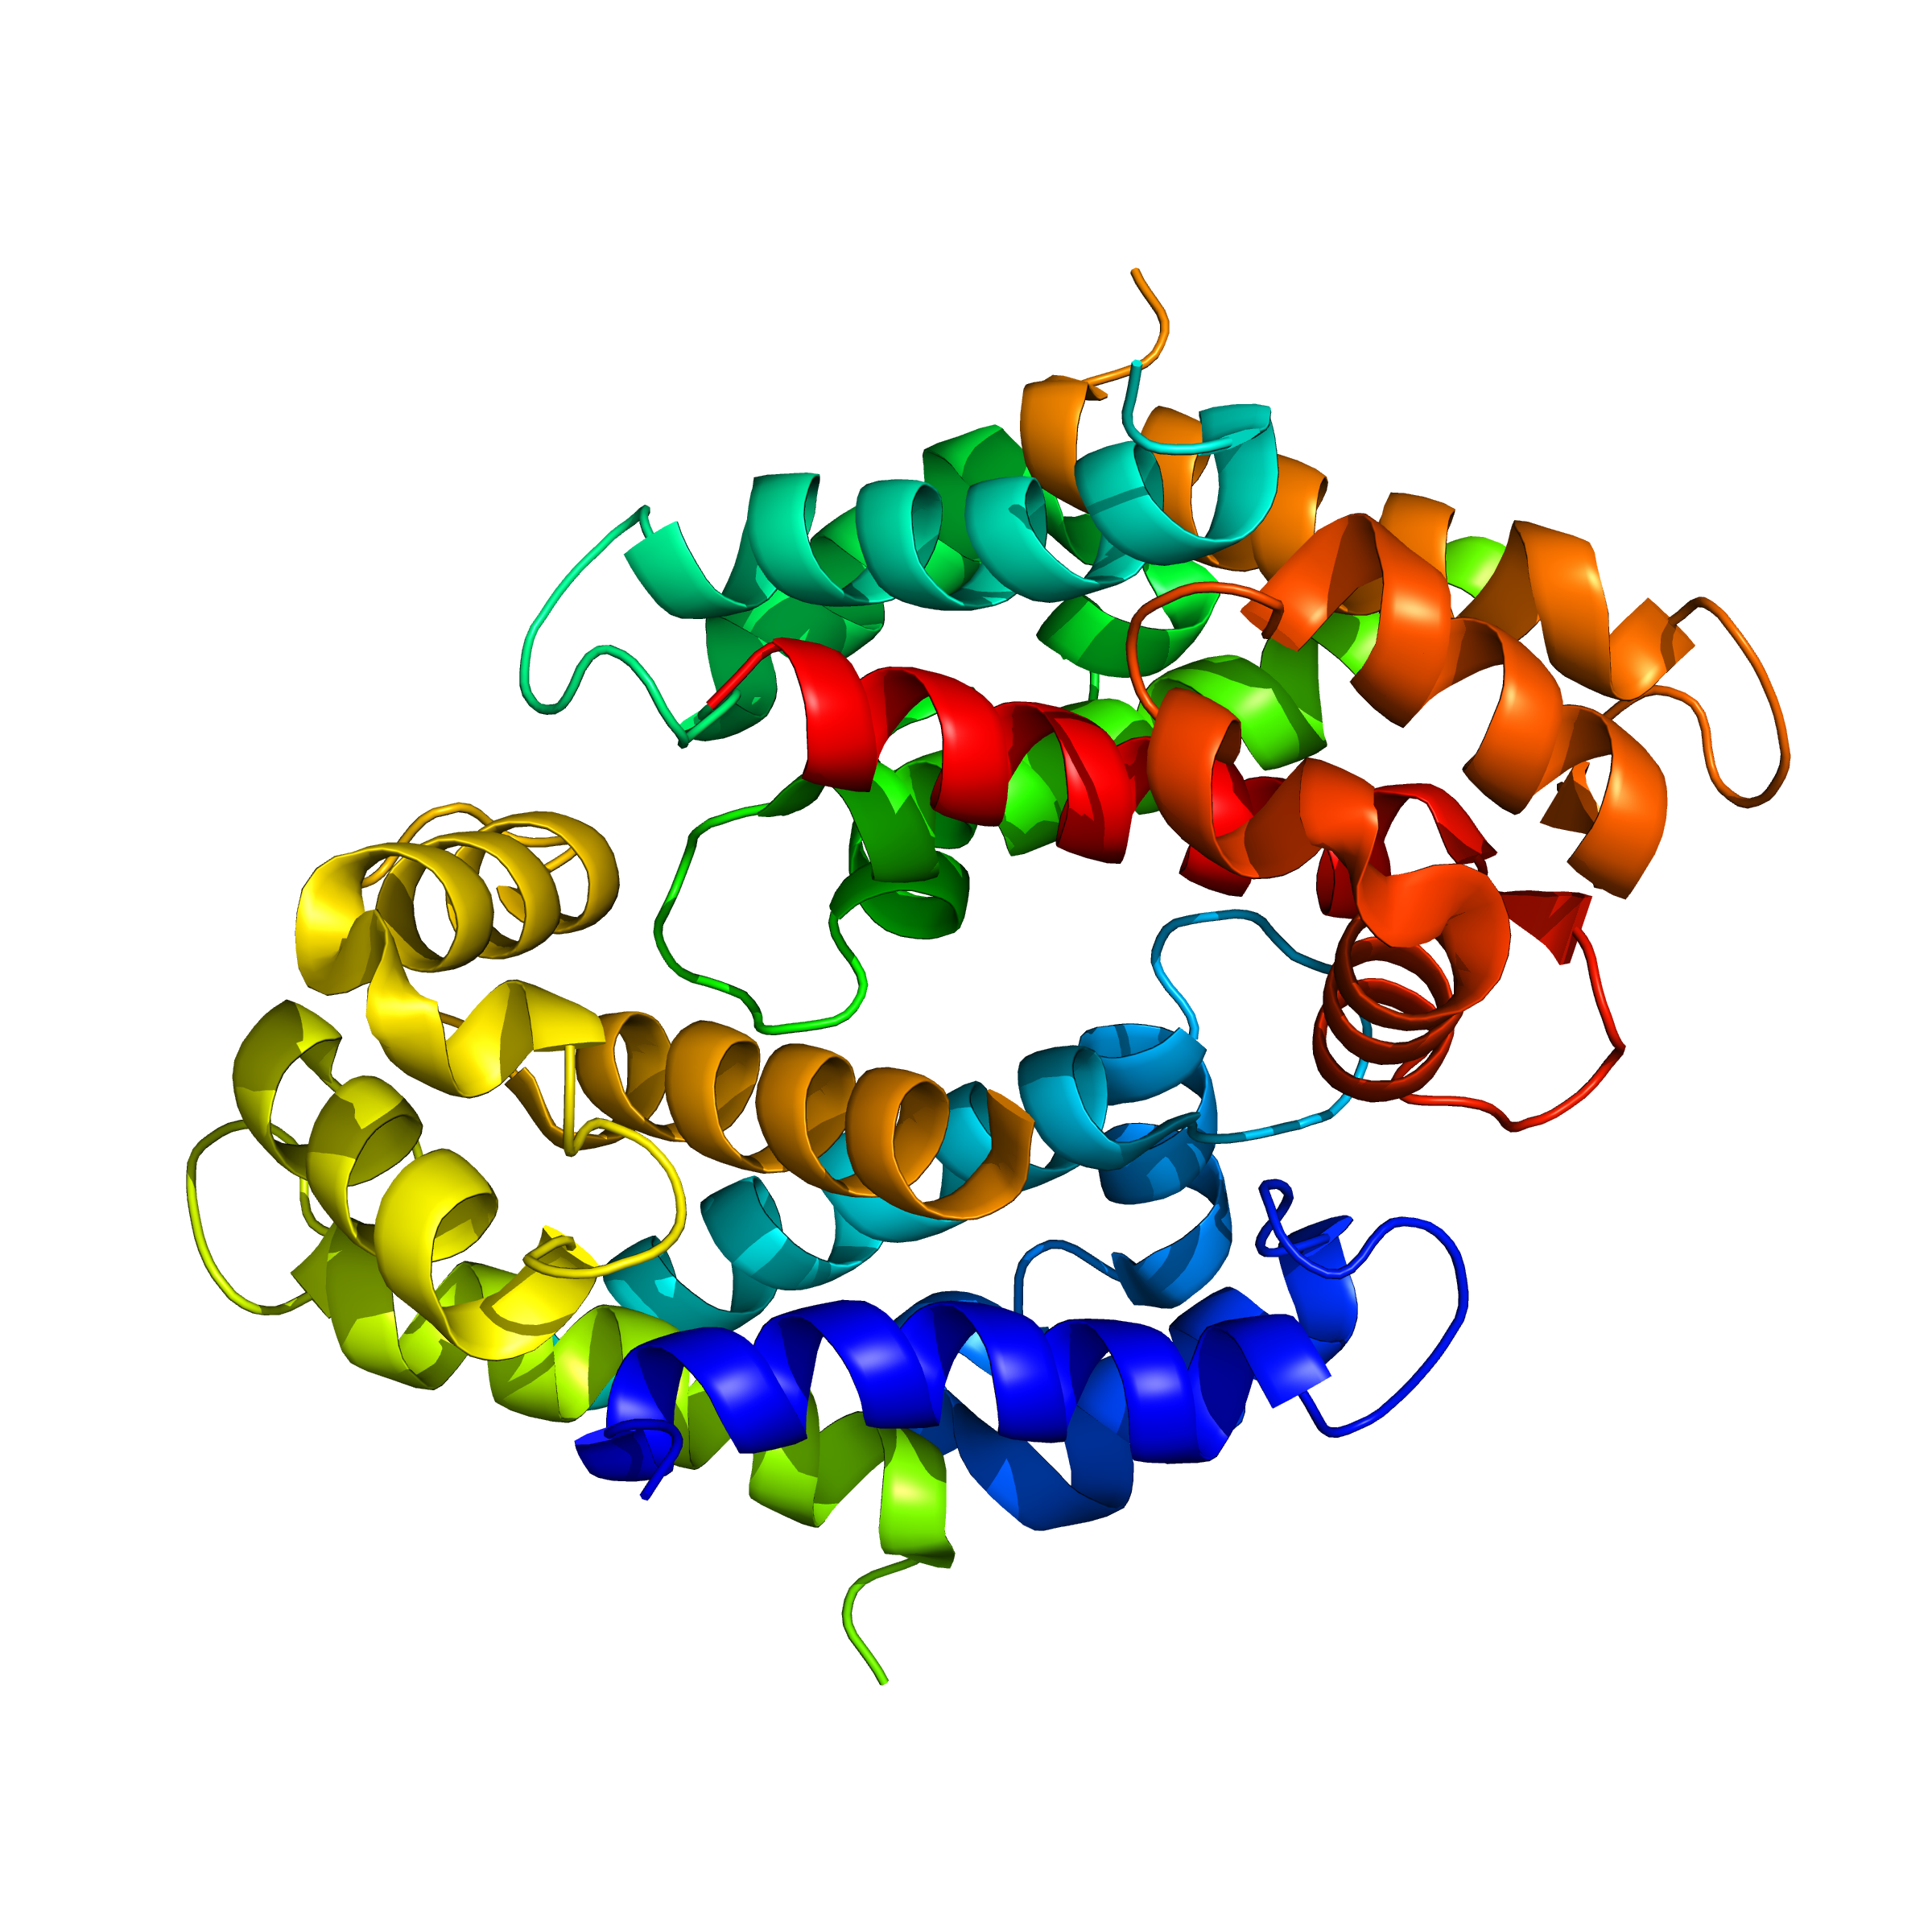 S100A89 | recombinant proteins offer